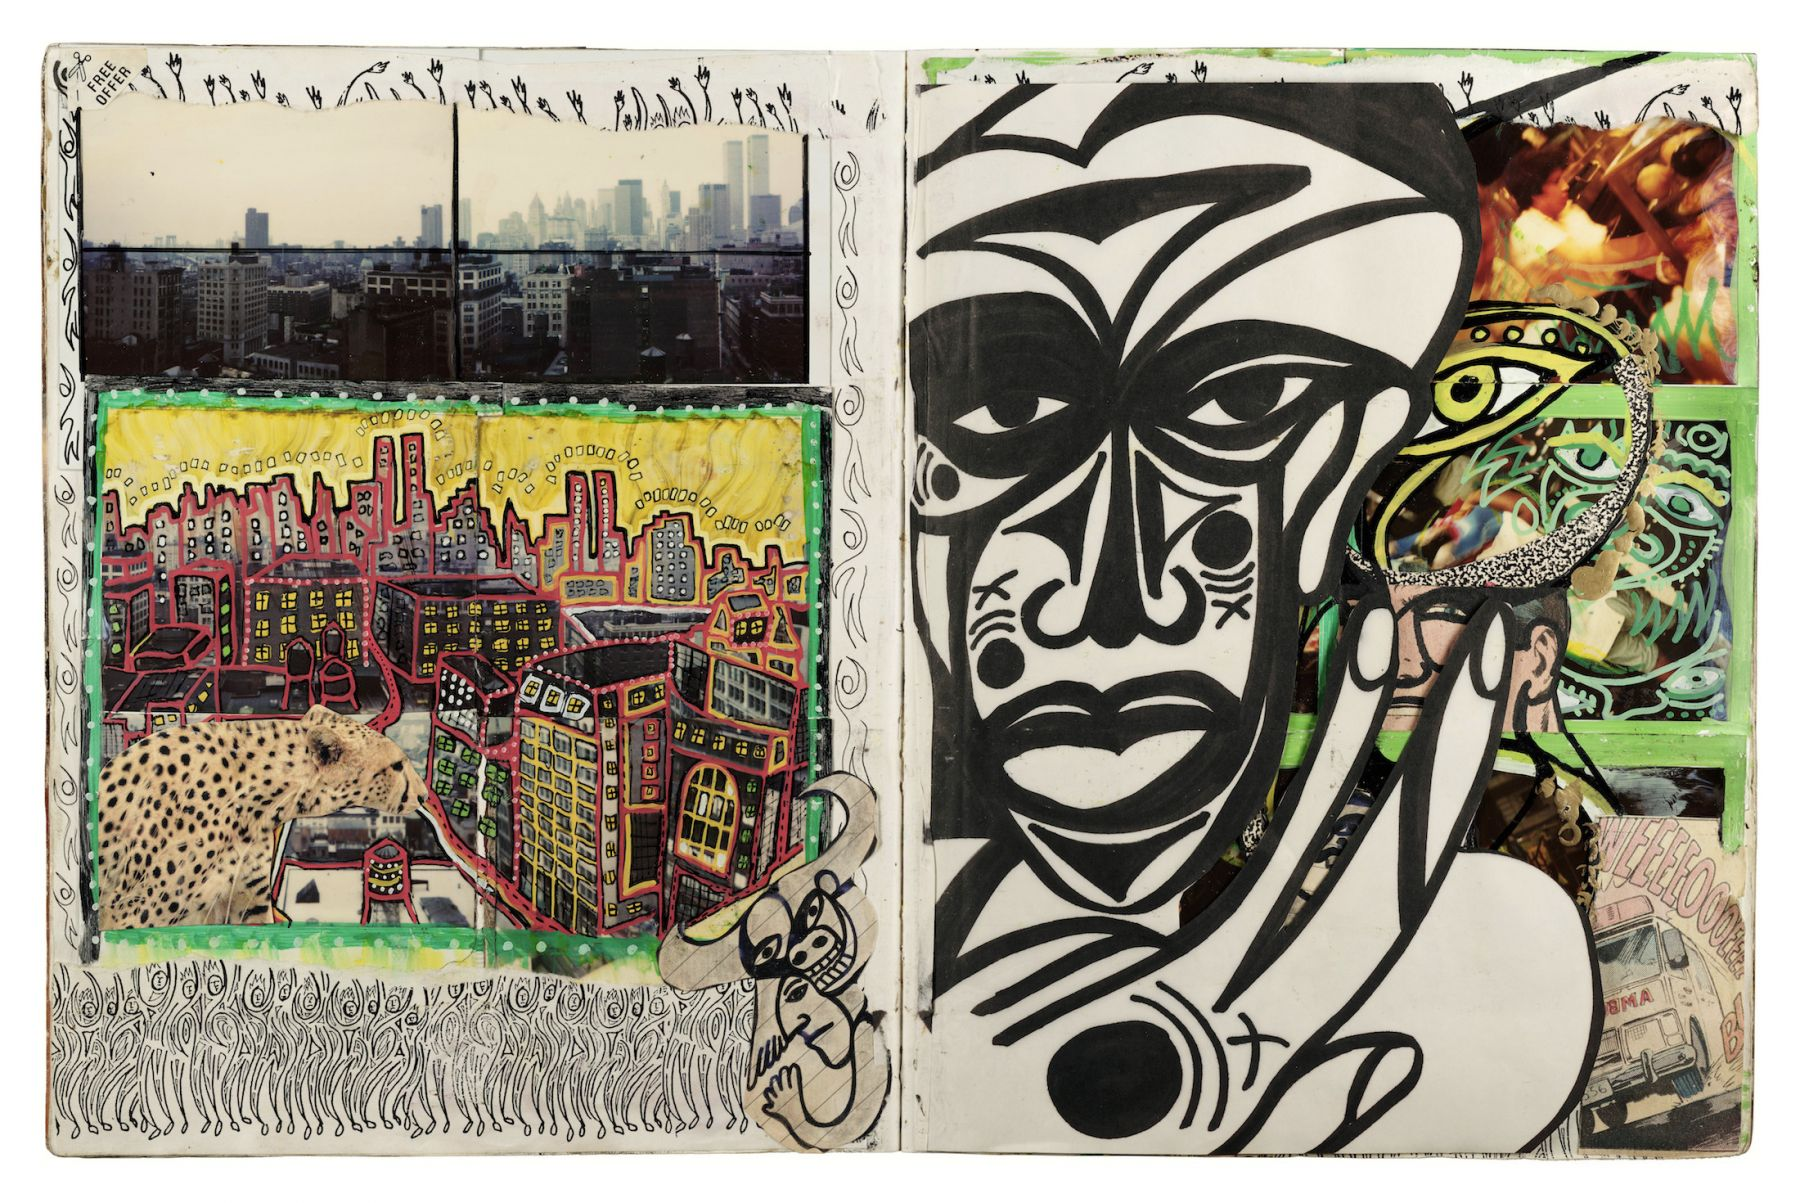 Nyc African Self Portrait by Dan Eldon at Hg Contemporary, founded by Philippe Hoerle-Guggenheim